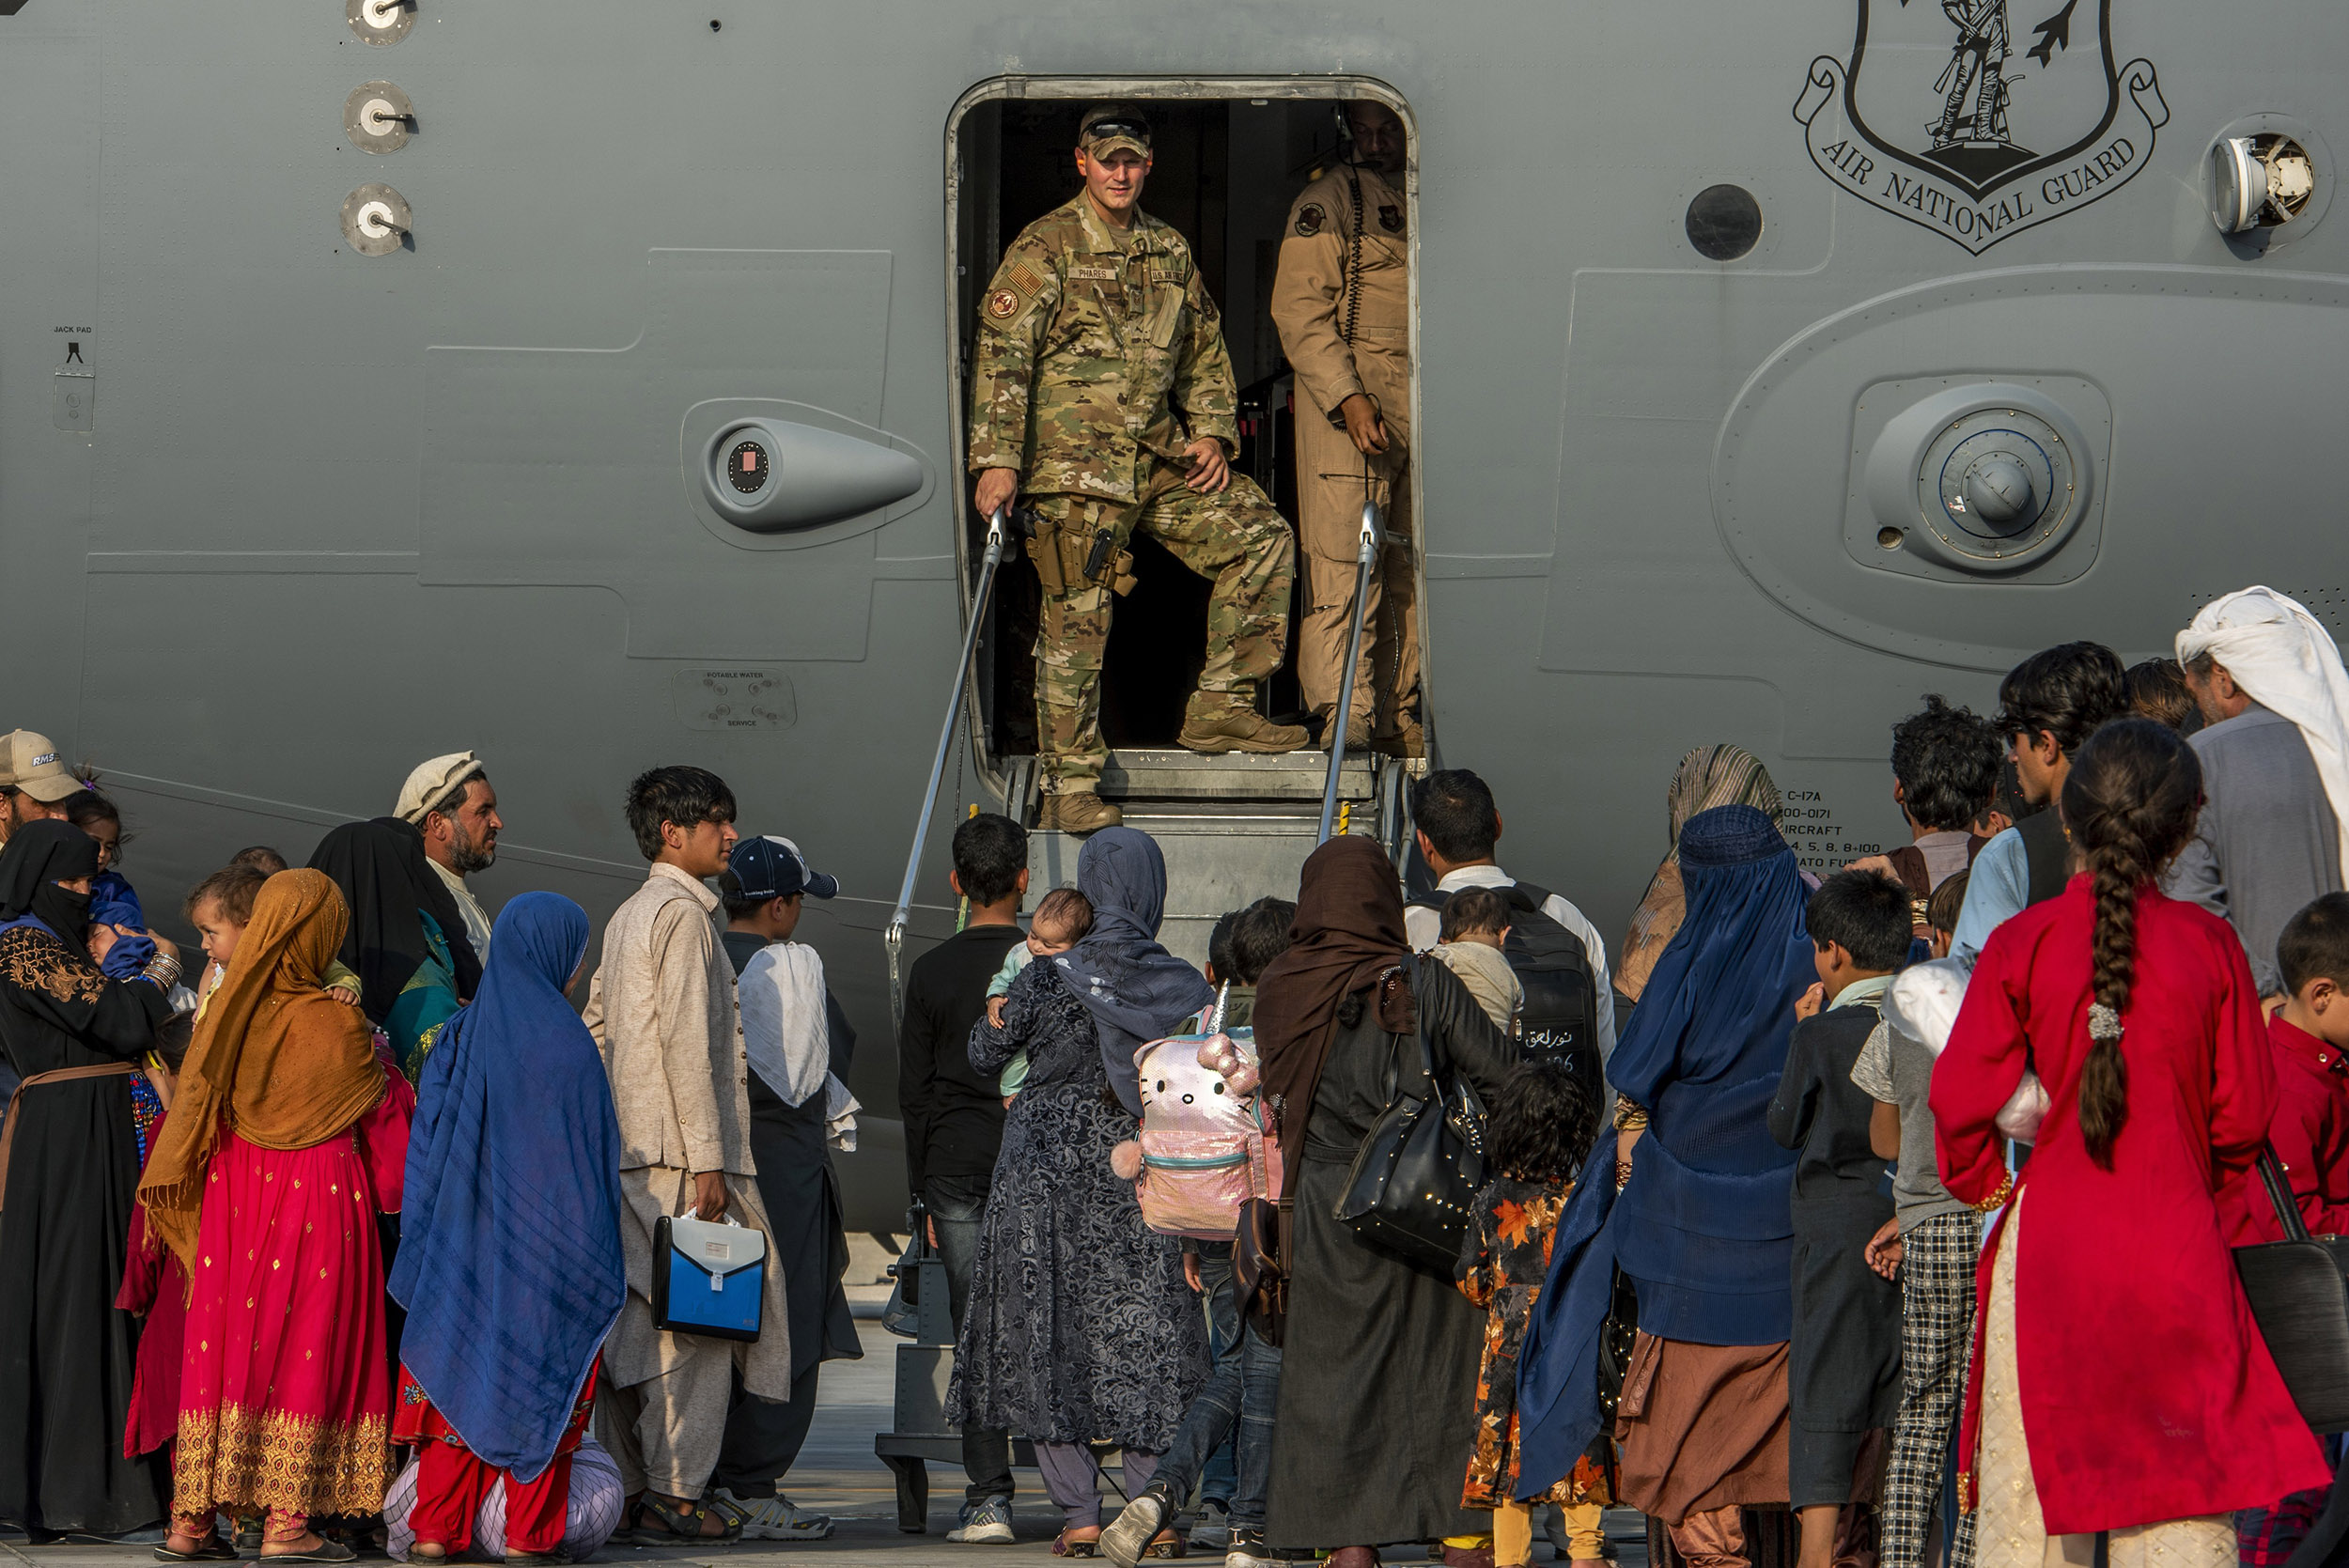 Afghan evacuees are going to Qatar — but conditions there are dire